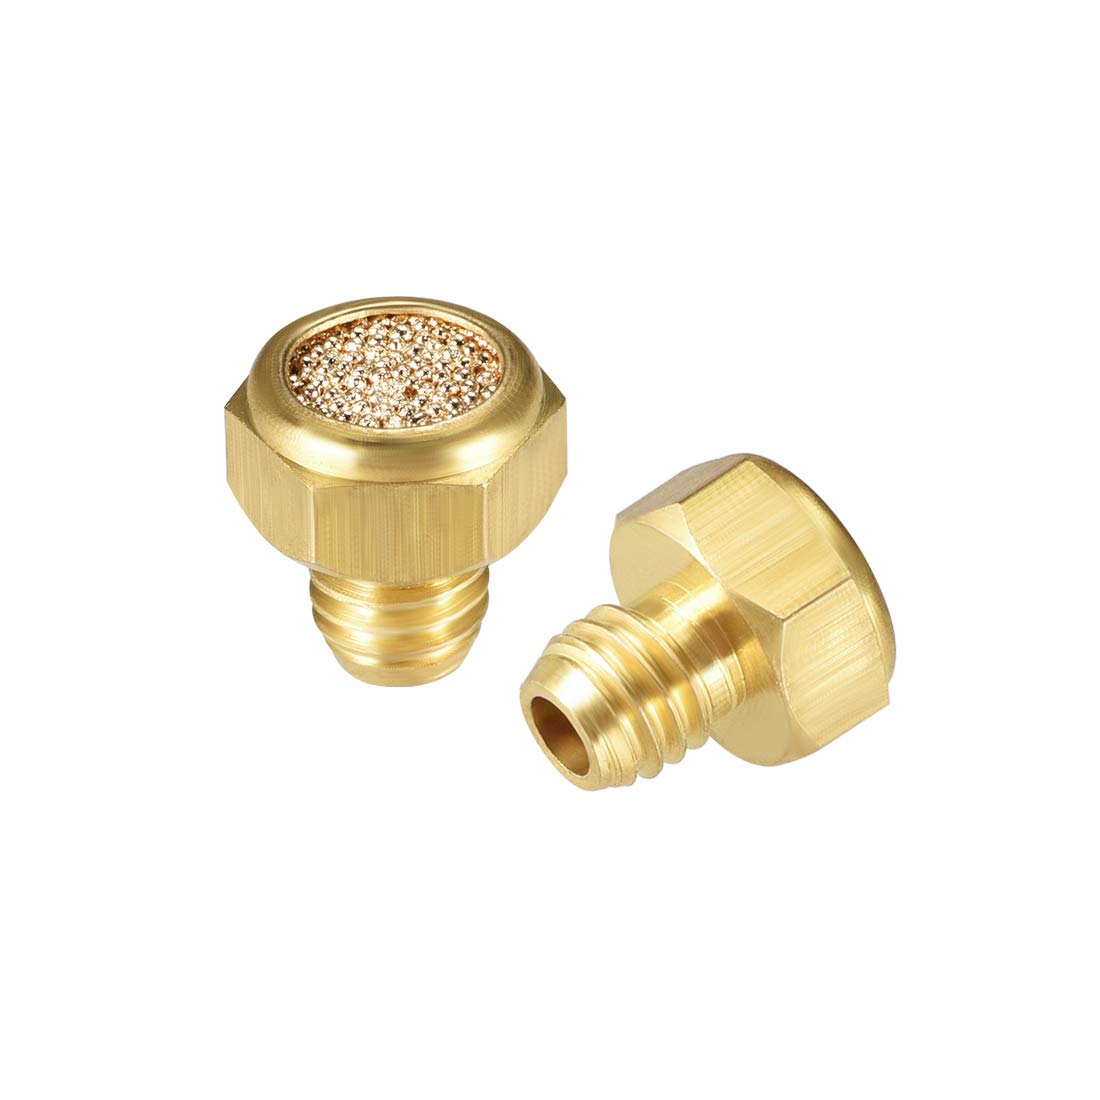 uxcell Sintered Bronze Exhaust Muffler G1//8 Brass Body Flat Pneumatic Air Muffler Air Flow Speed Controller Brass Flow Control Muffler 2pcs